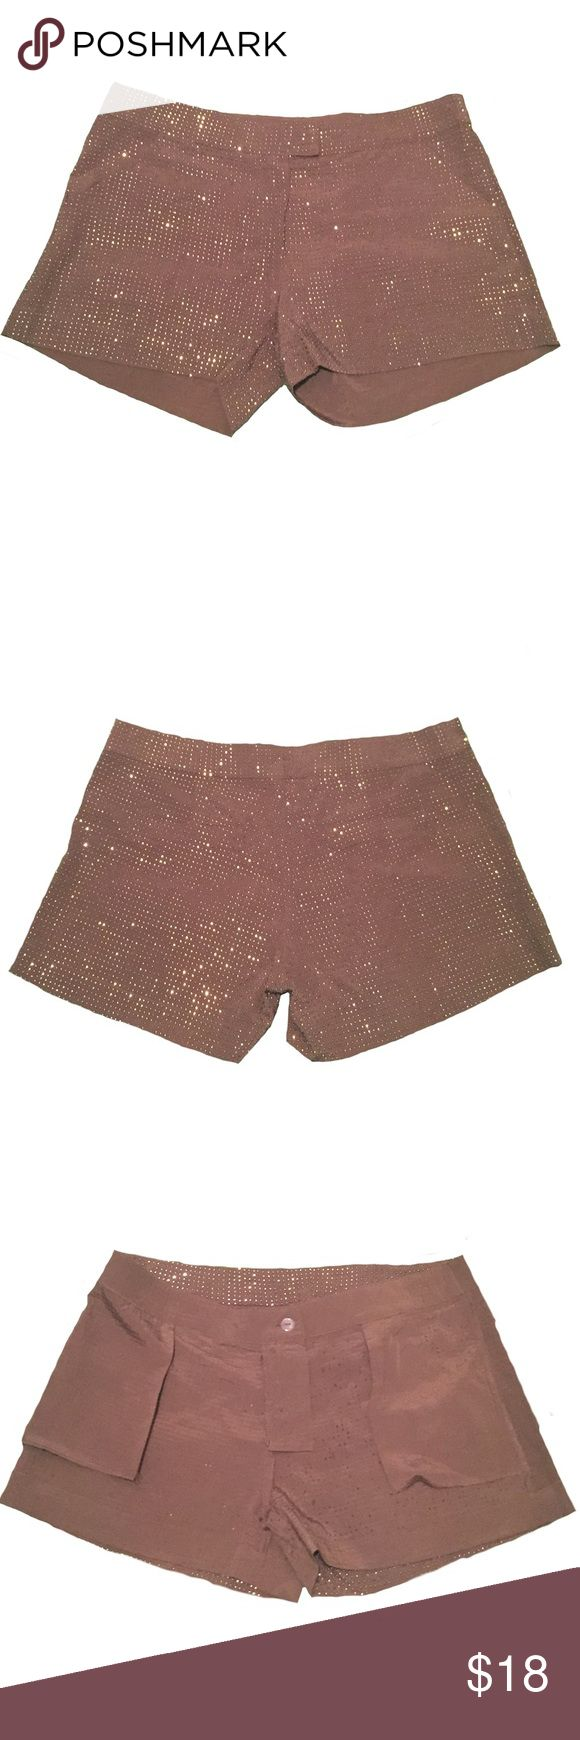 "NWOT Chocolate Brown Embellished Shorts Size M ✨Size Medium ✨16"" Hip to Hip Across Waistband ✨3"" Inseam ✨Unlined ✨Stud Embellishments ✨Hidden Hook, Button & Zip Closure ✨Slant Front Pockets  ✨Hidden Faux Back Pockets  💥Last two photos are close ups of embellishments. Shorts color are accurately depicted in first 4 photos💥 Shorts"